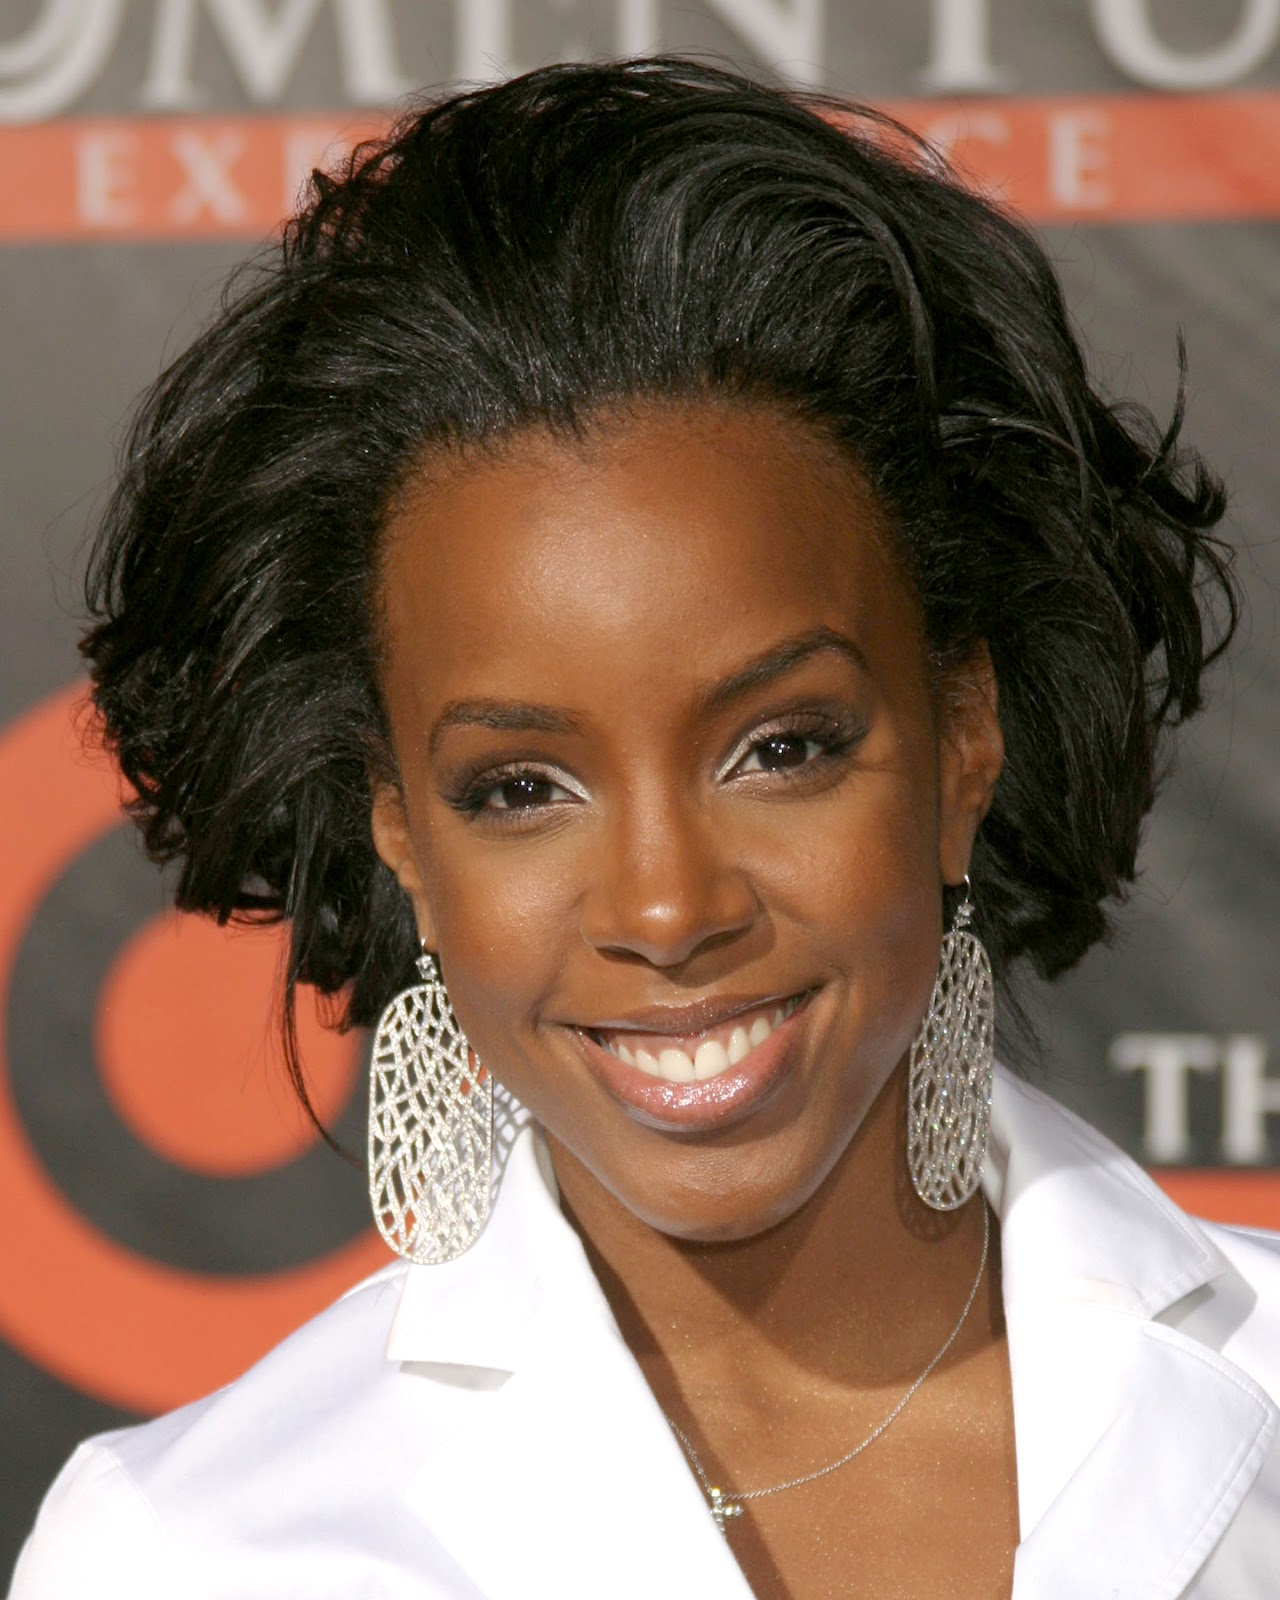 http://1.bp.blogspot.com/-EcWfDMgnkFs/UB2J2rsRkmI/AAAAAAAAFQA/VFuT6qnMnNM/s1600/Kelly-Rowland-hairstyle-pictures-singer-actress-celebrity-on+and+on-Kelly-Rowlands-wallpapers+(10).jpg